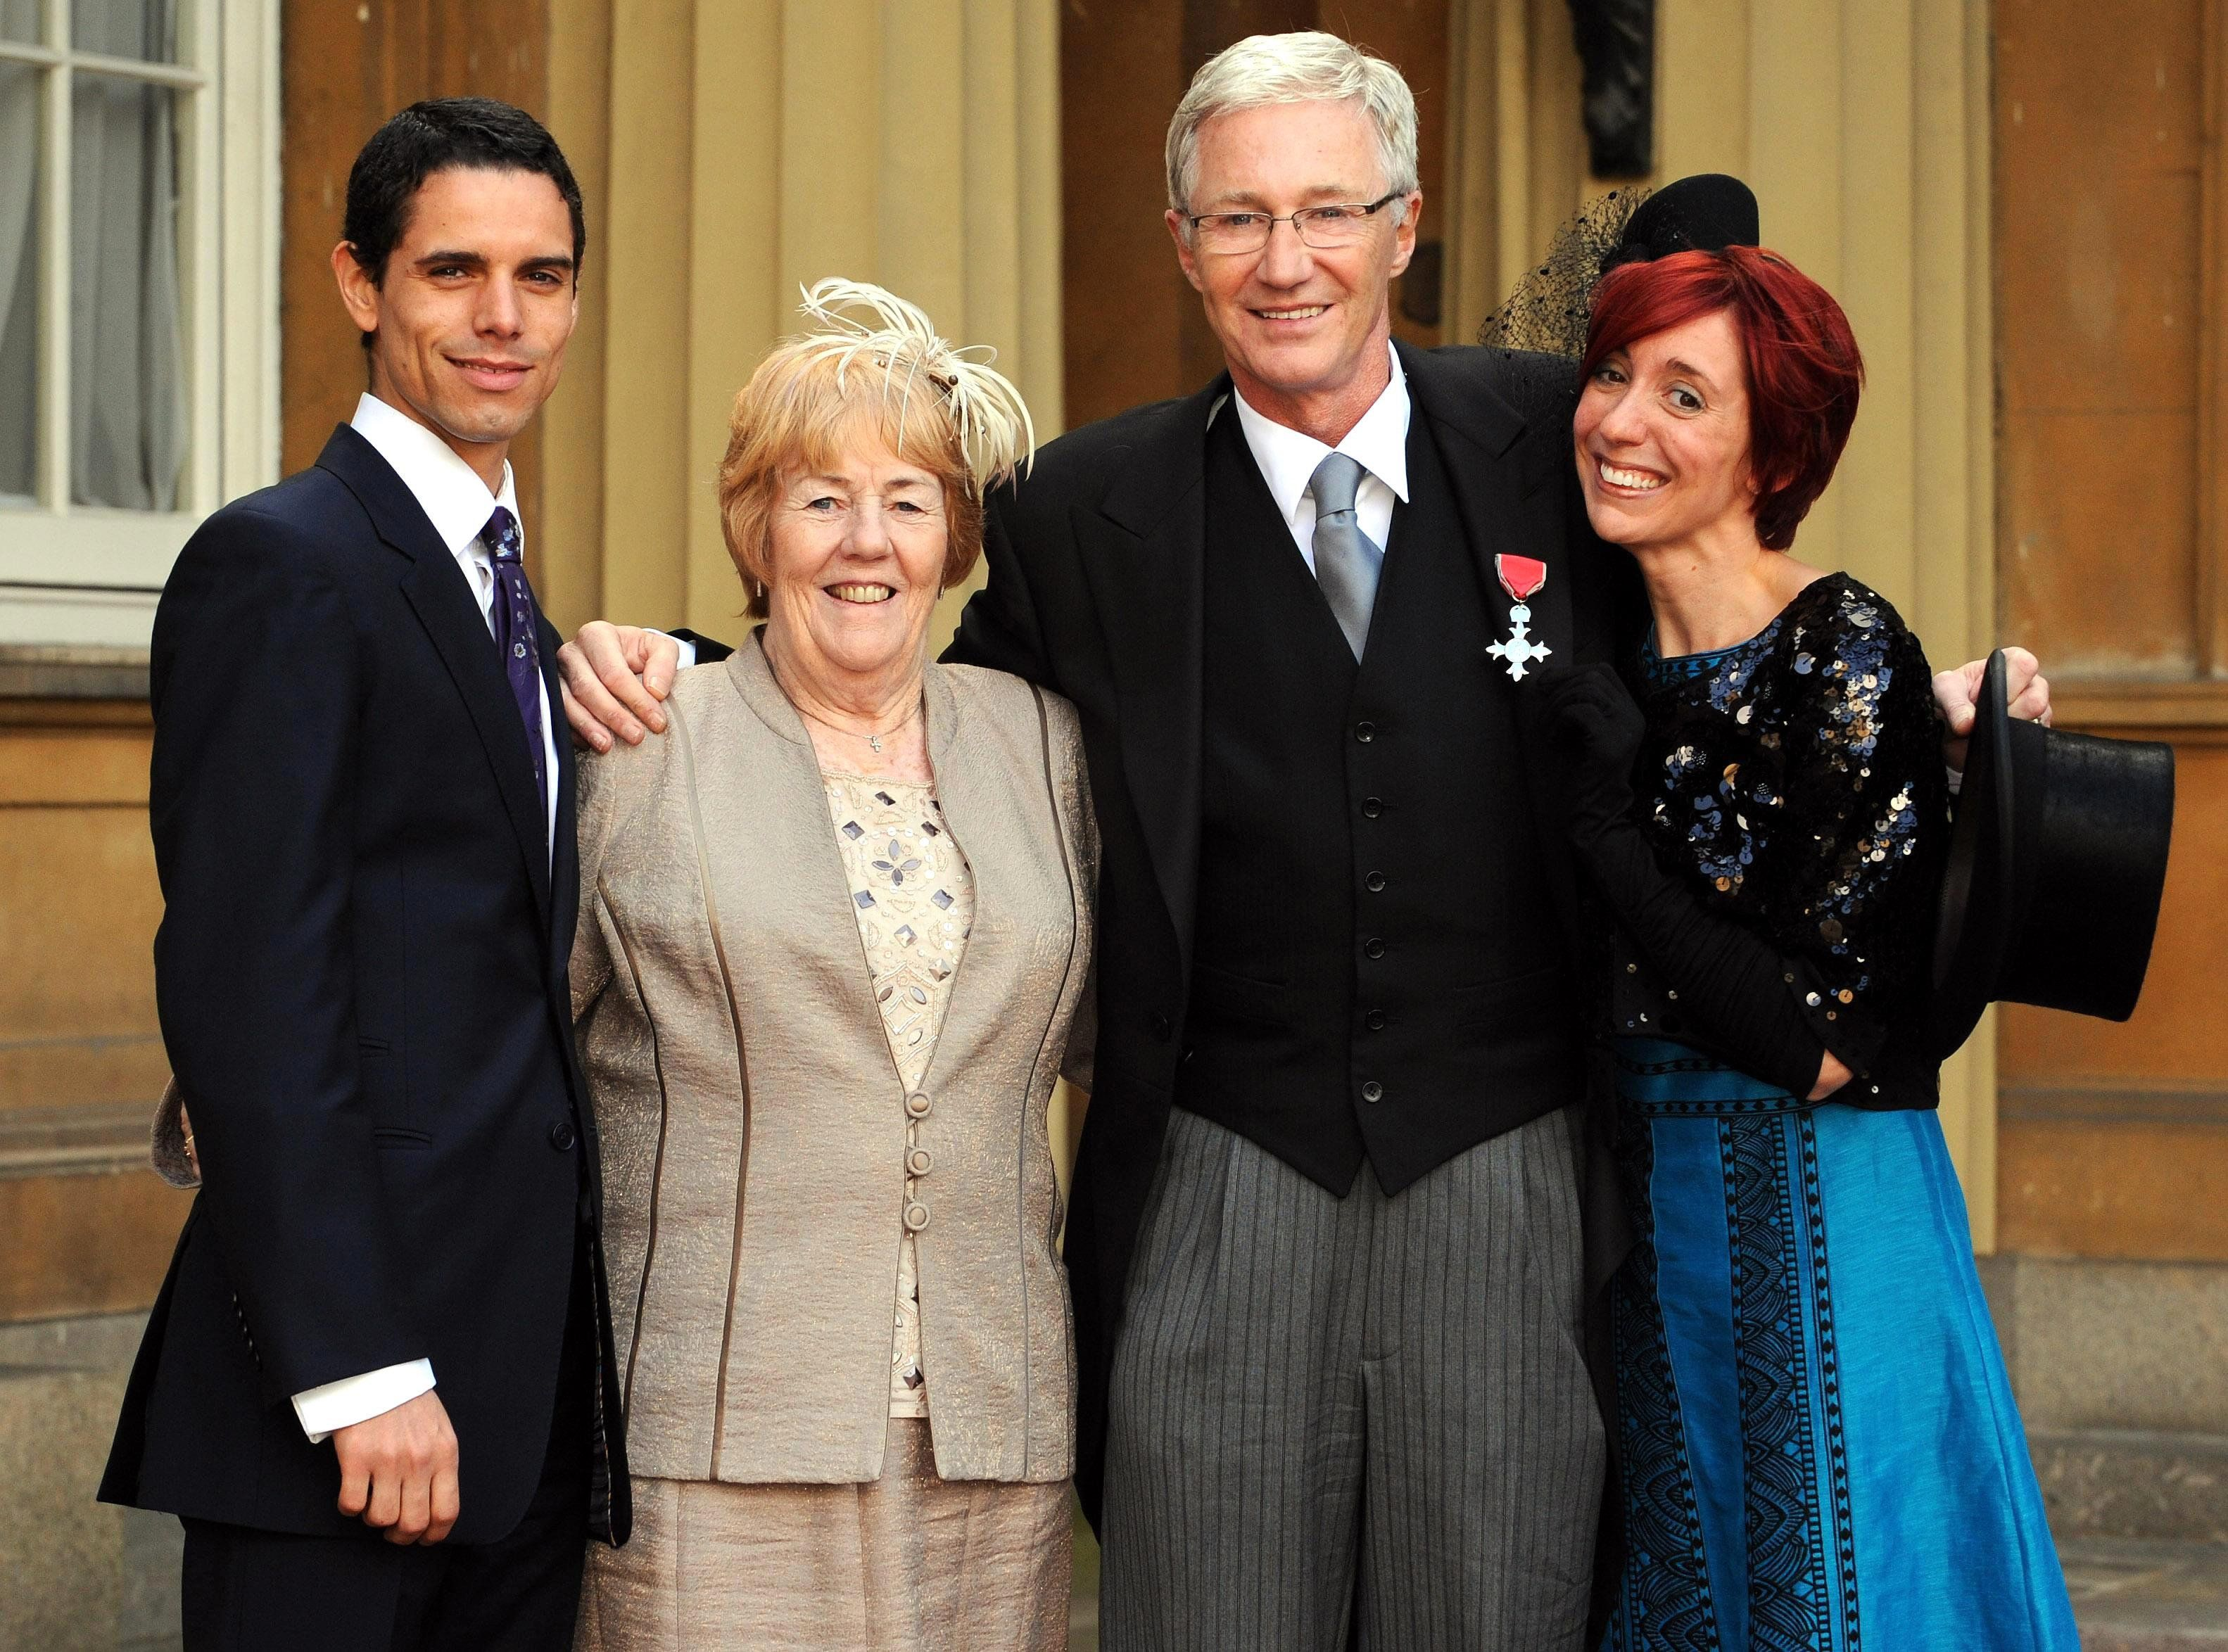 Paul O'Grady Marries His Ballet Dancer Boyfriend In Secret Ceremony